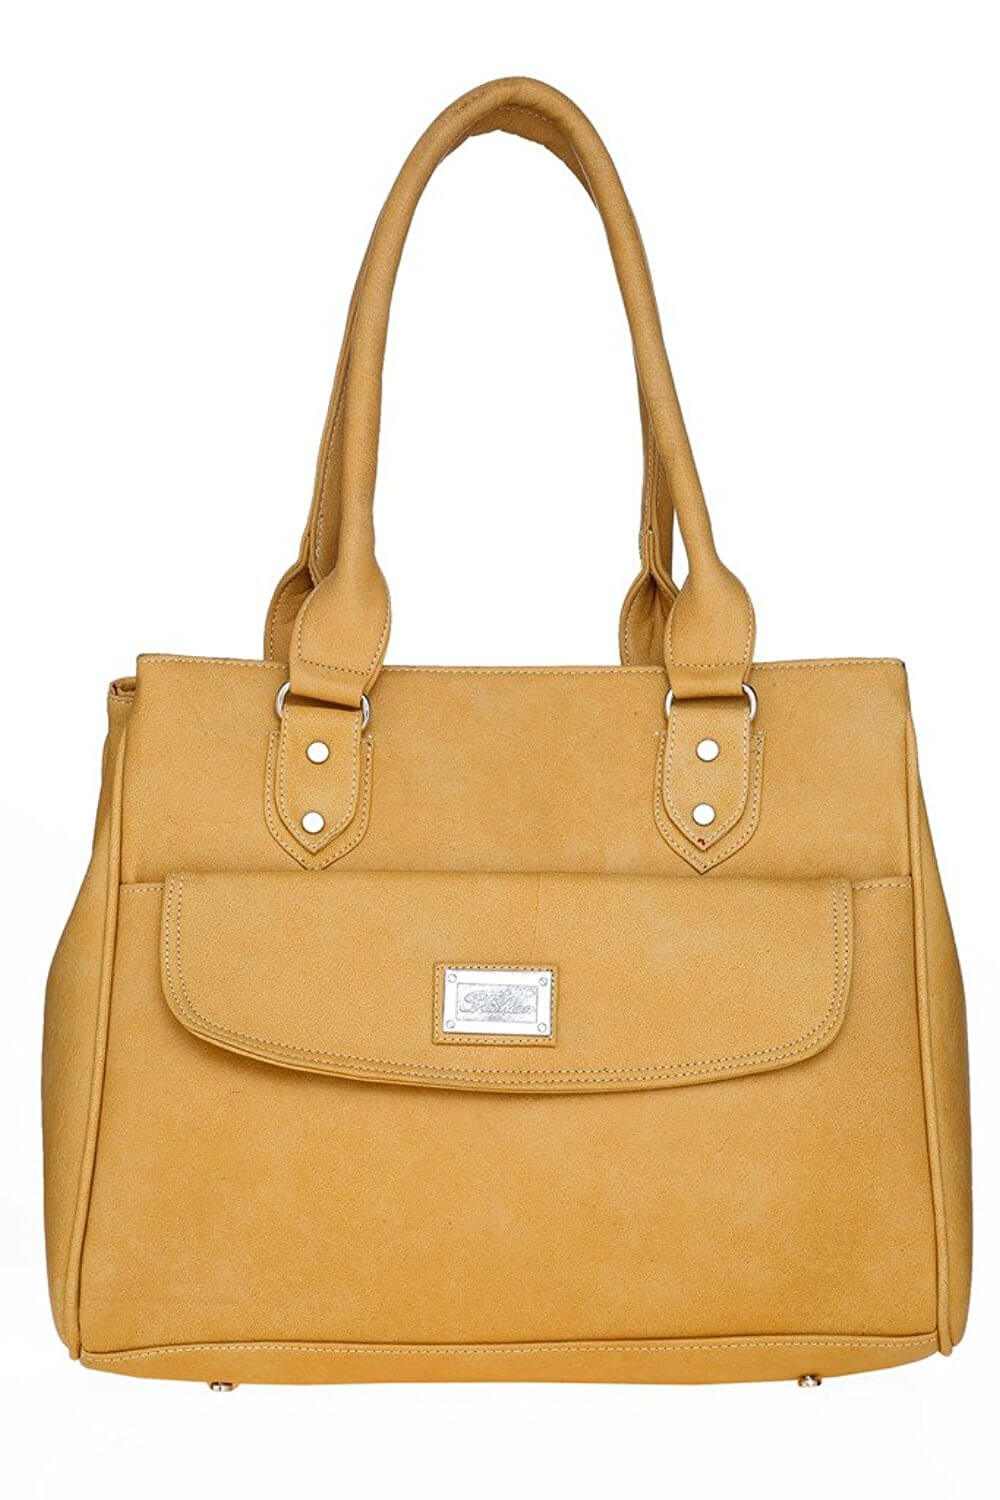 LADY QUEEN Beige Faux Leather Shoulder Bag LD - 391